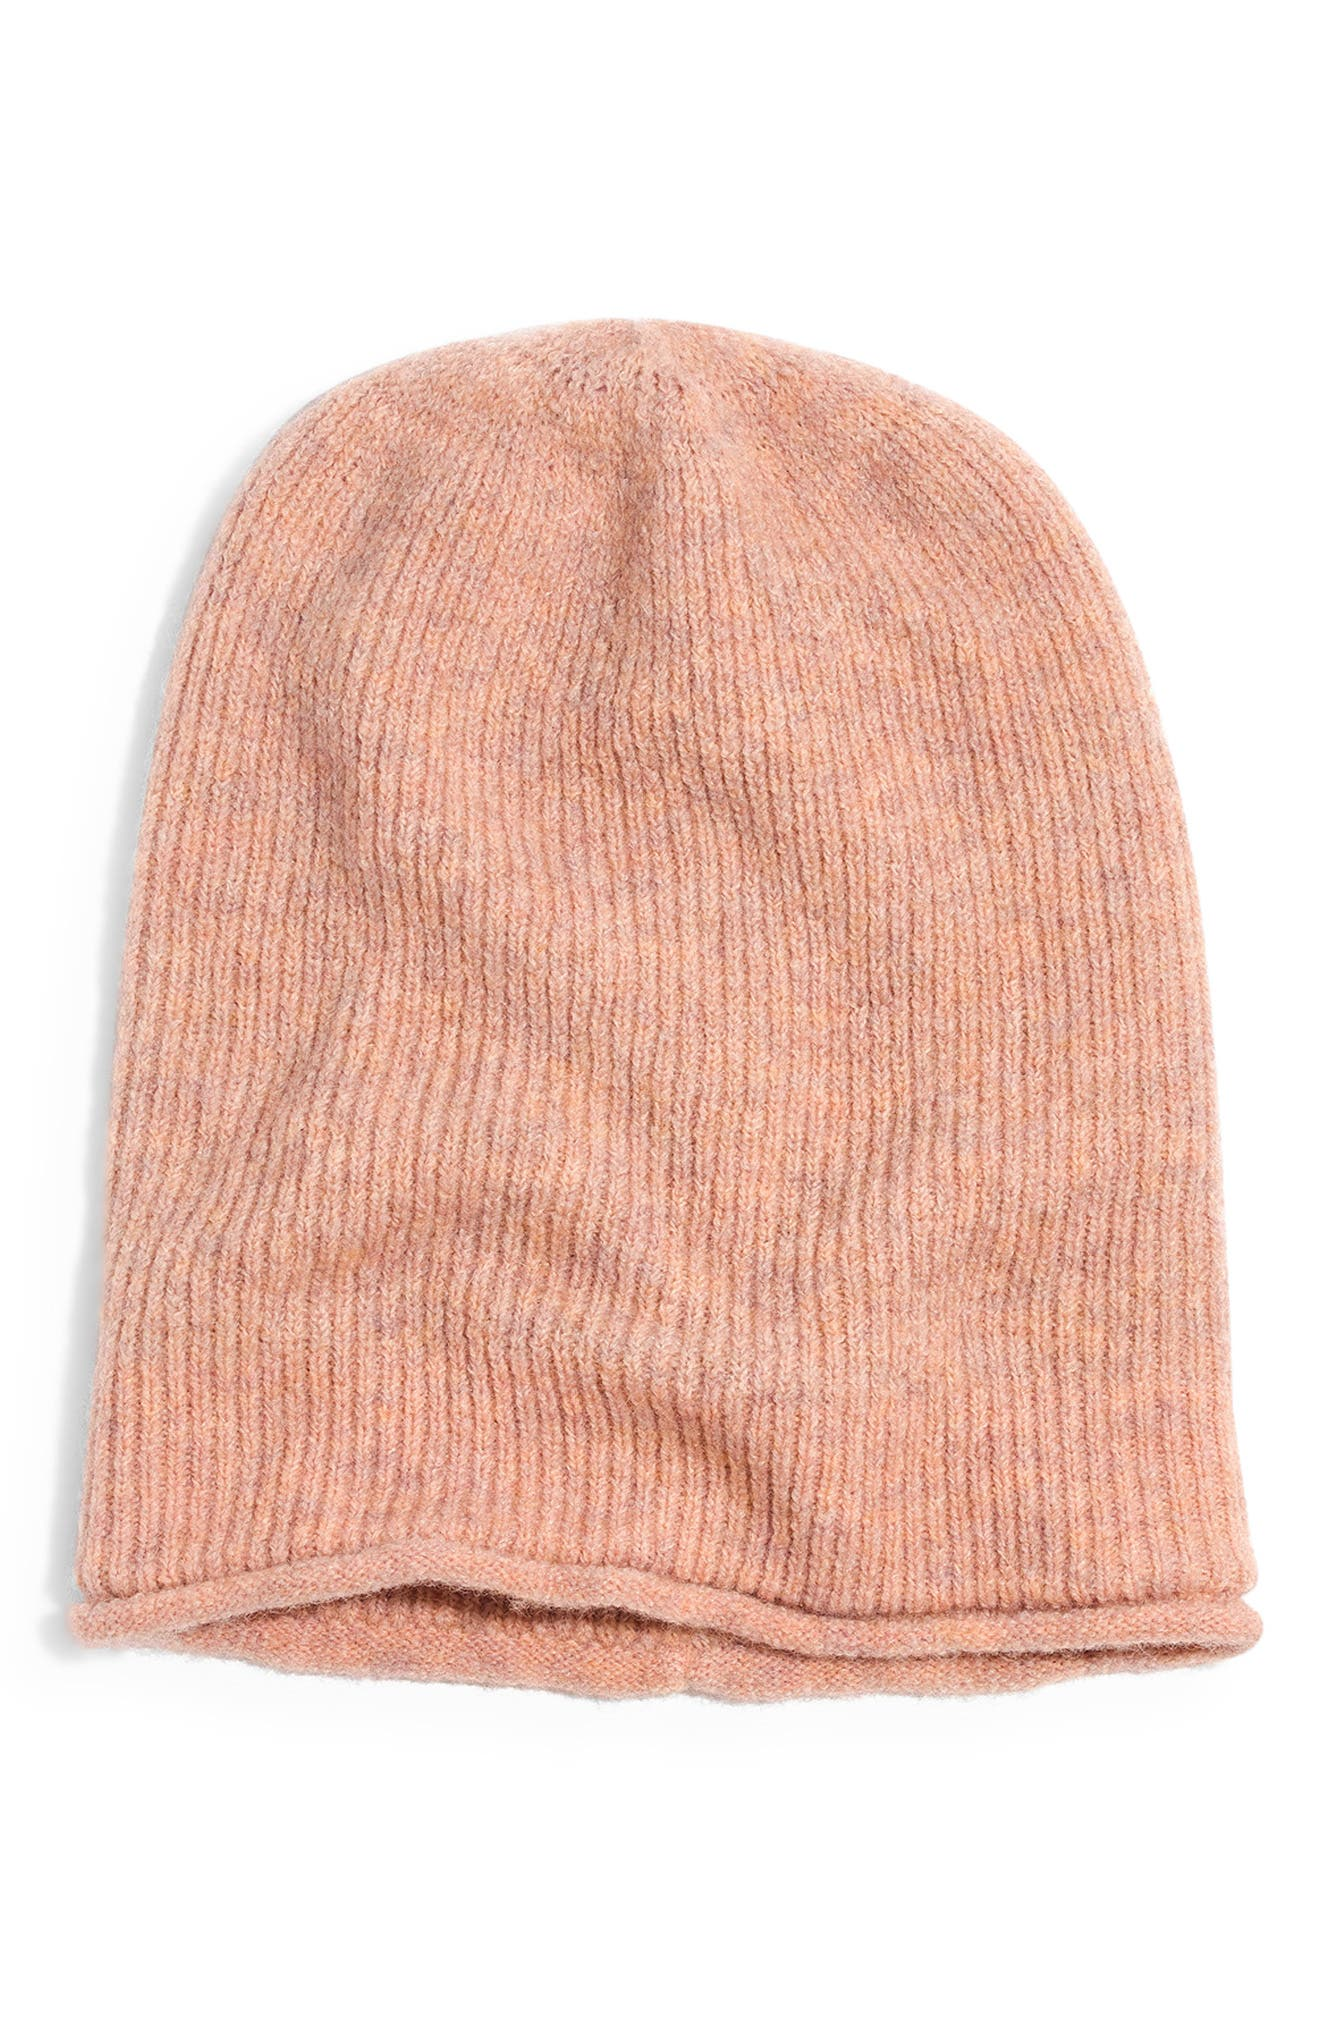 Kent Beanie,                             Main thumbnail 1, color,                             HTHR CARNATION